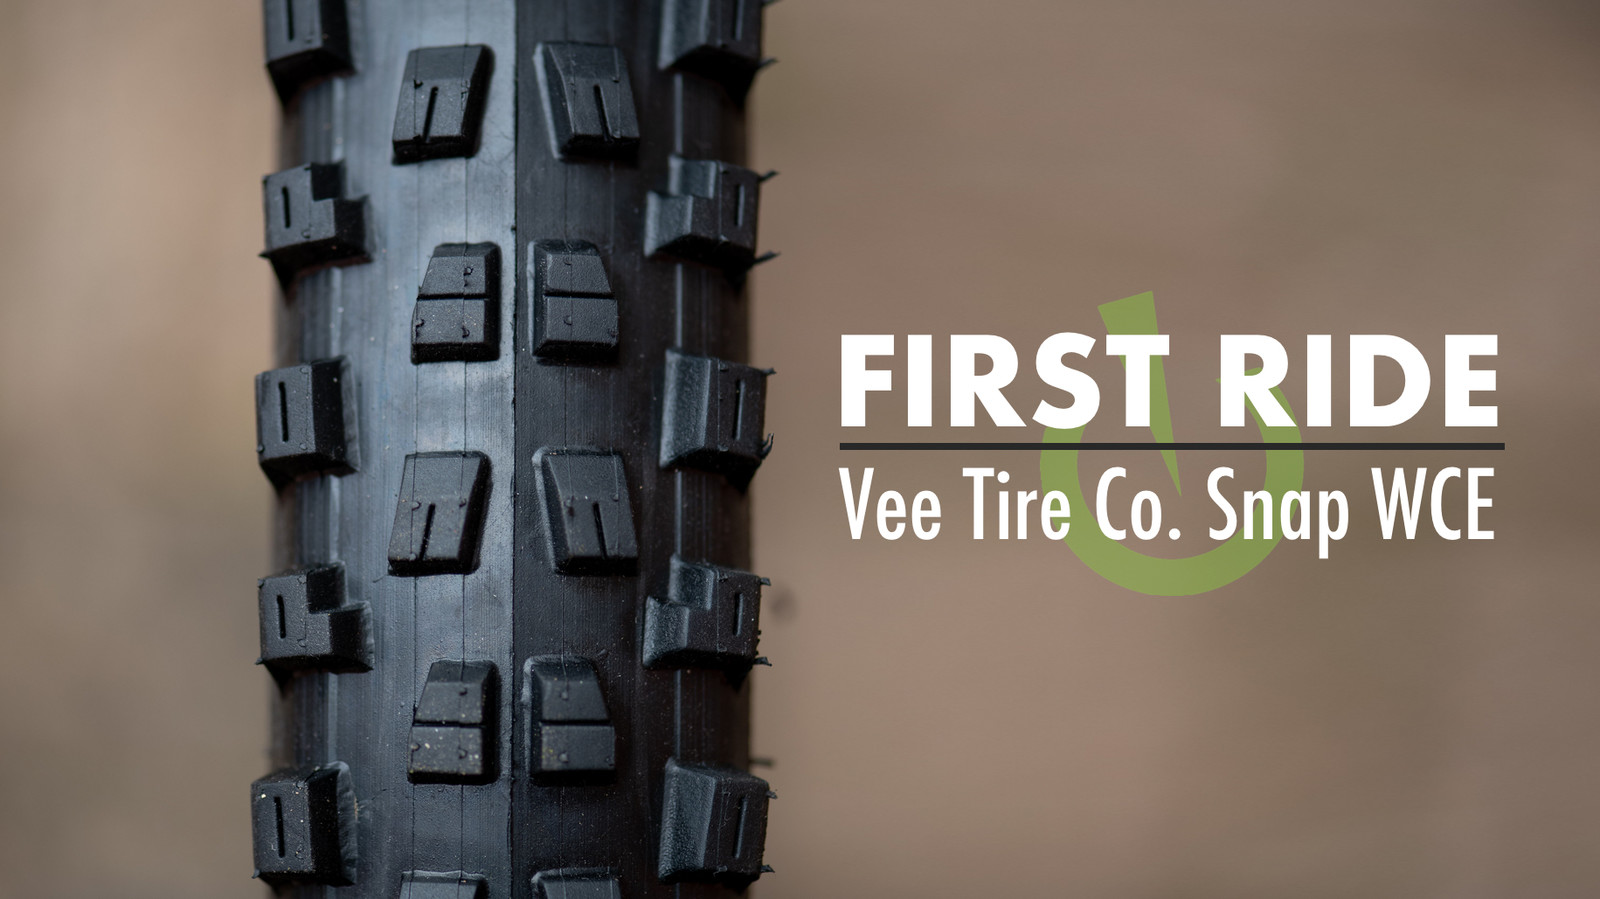 First Ride - Vee Tire Co's Snap WCE